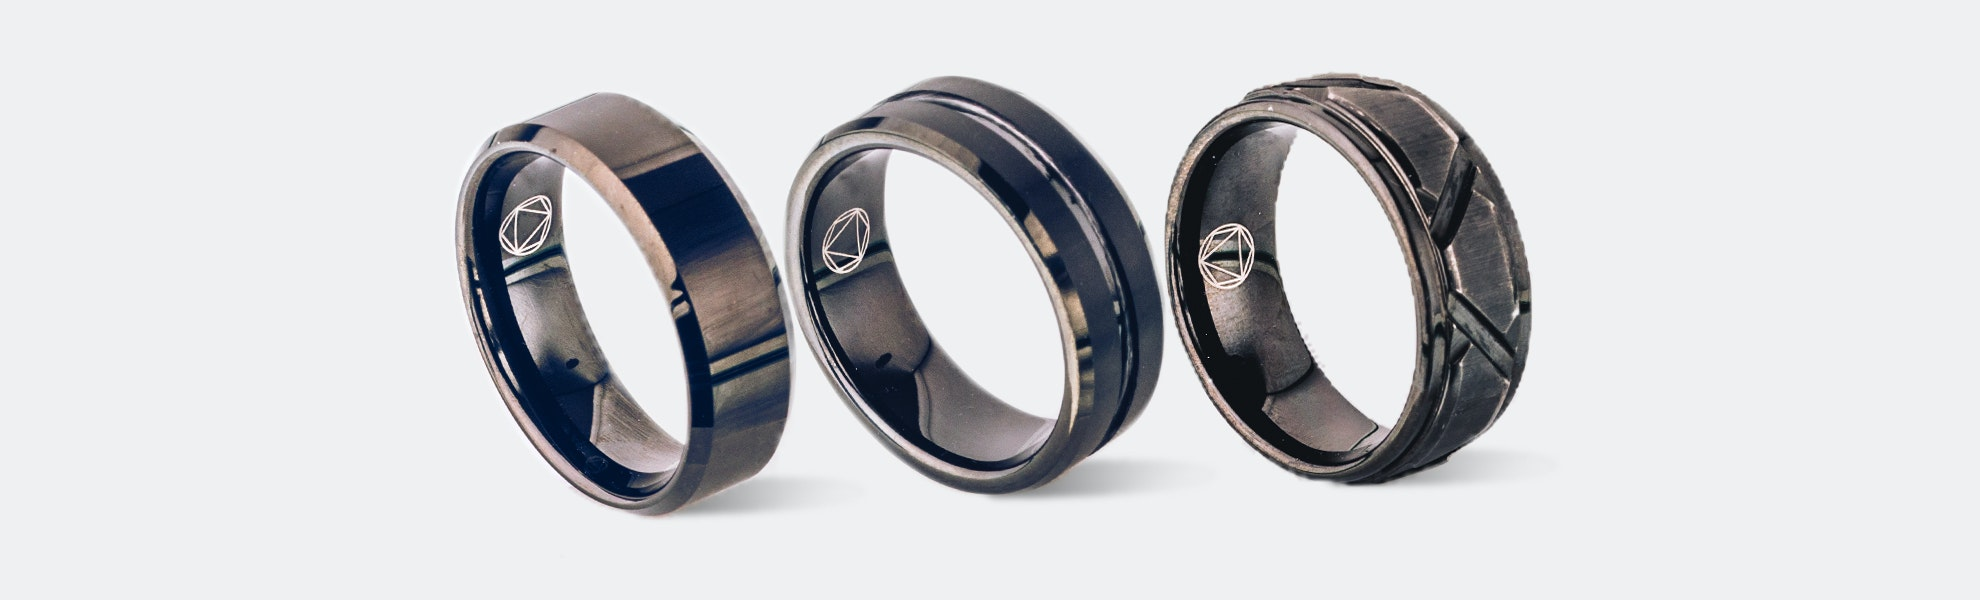 EXSO Rings & Necklaces – Massdrop Debut